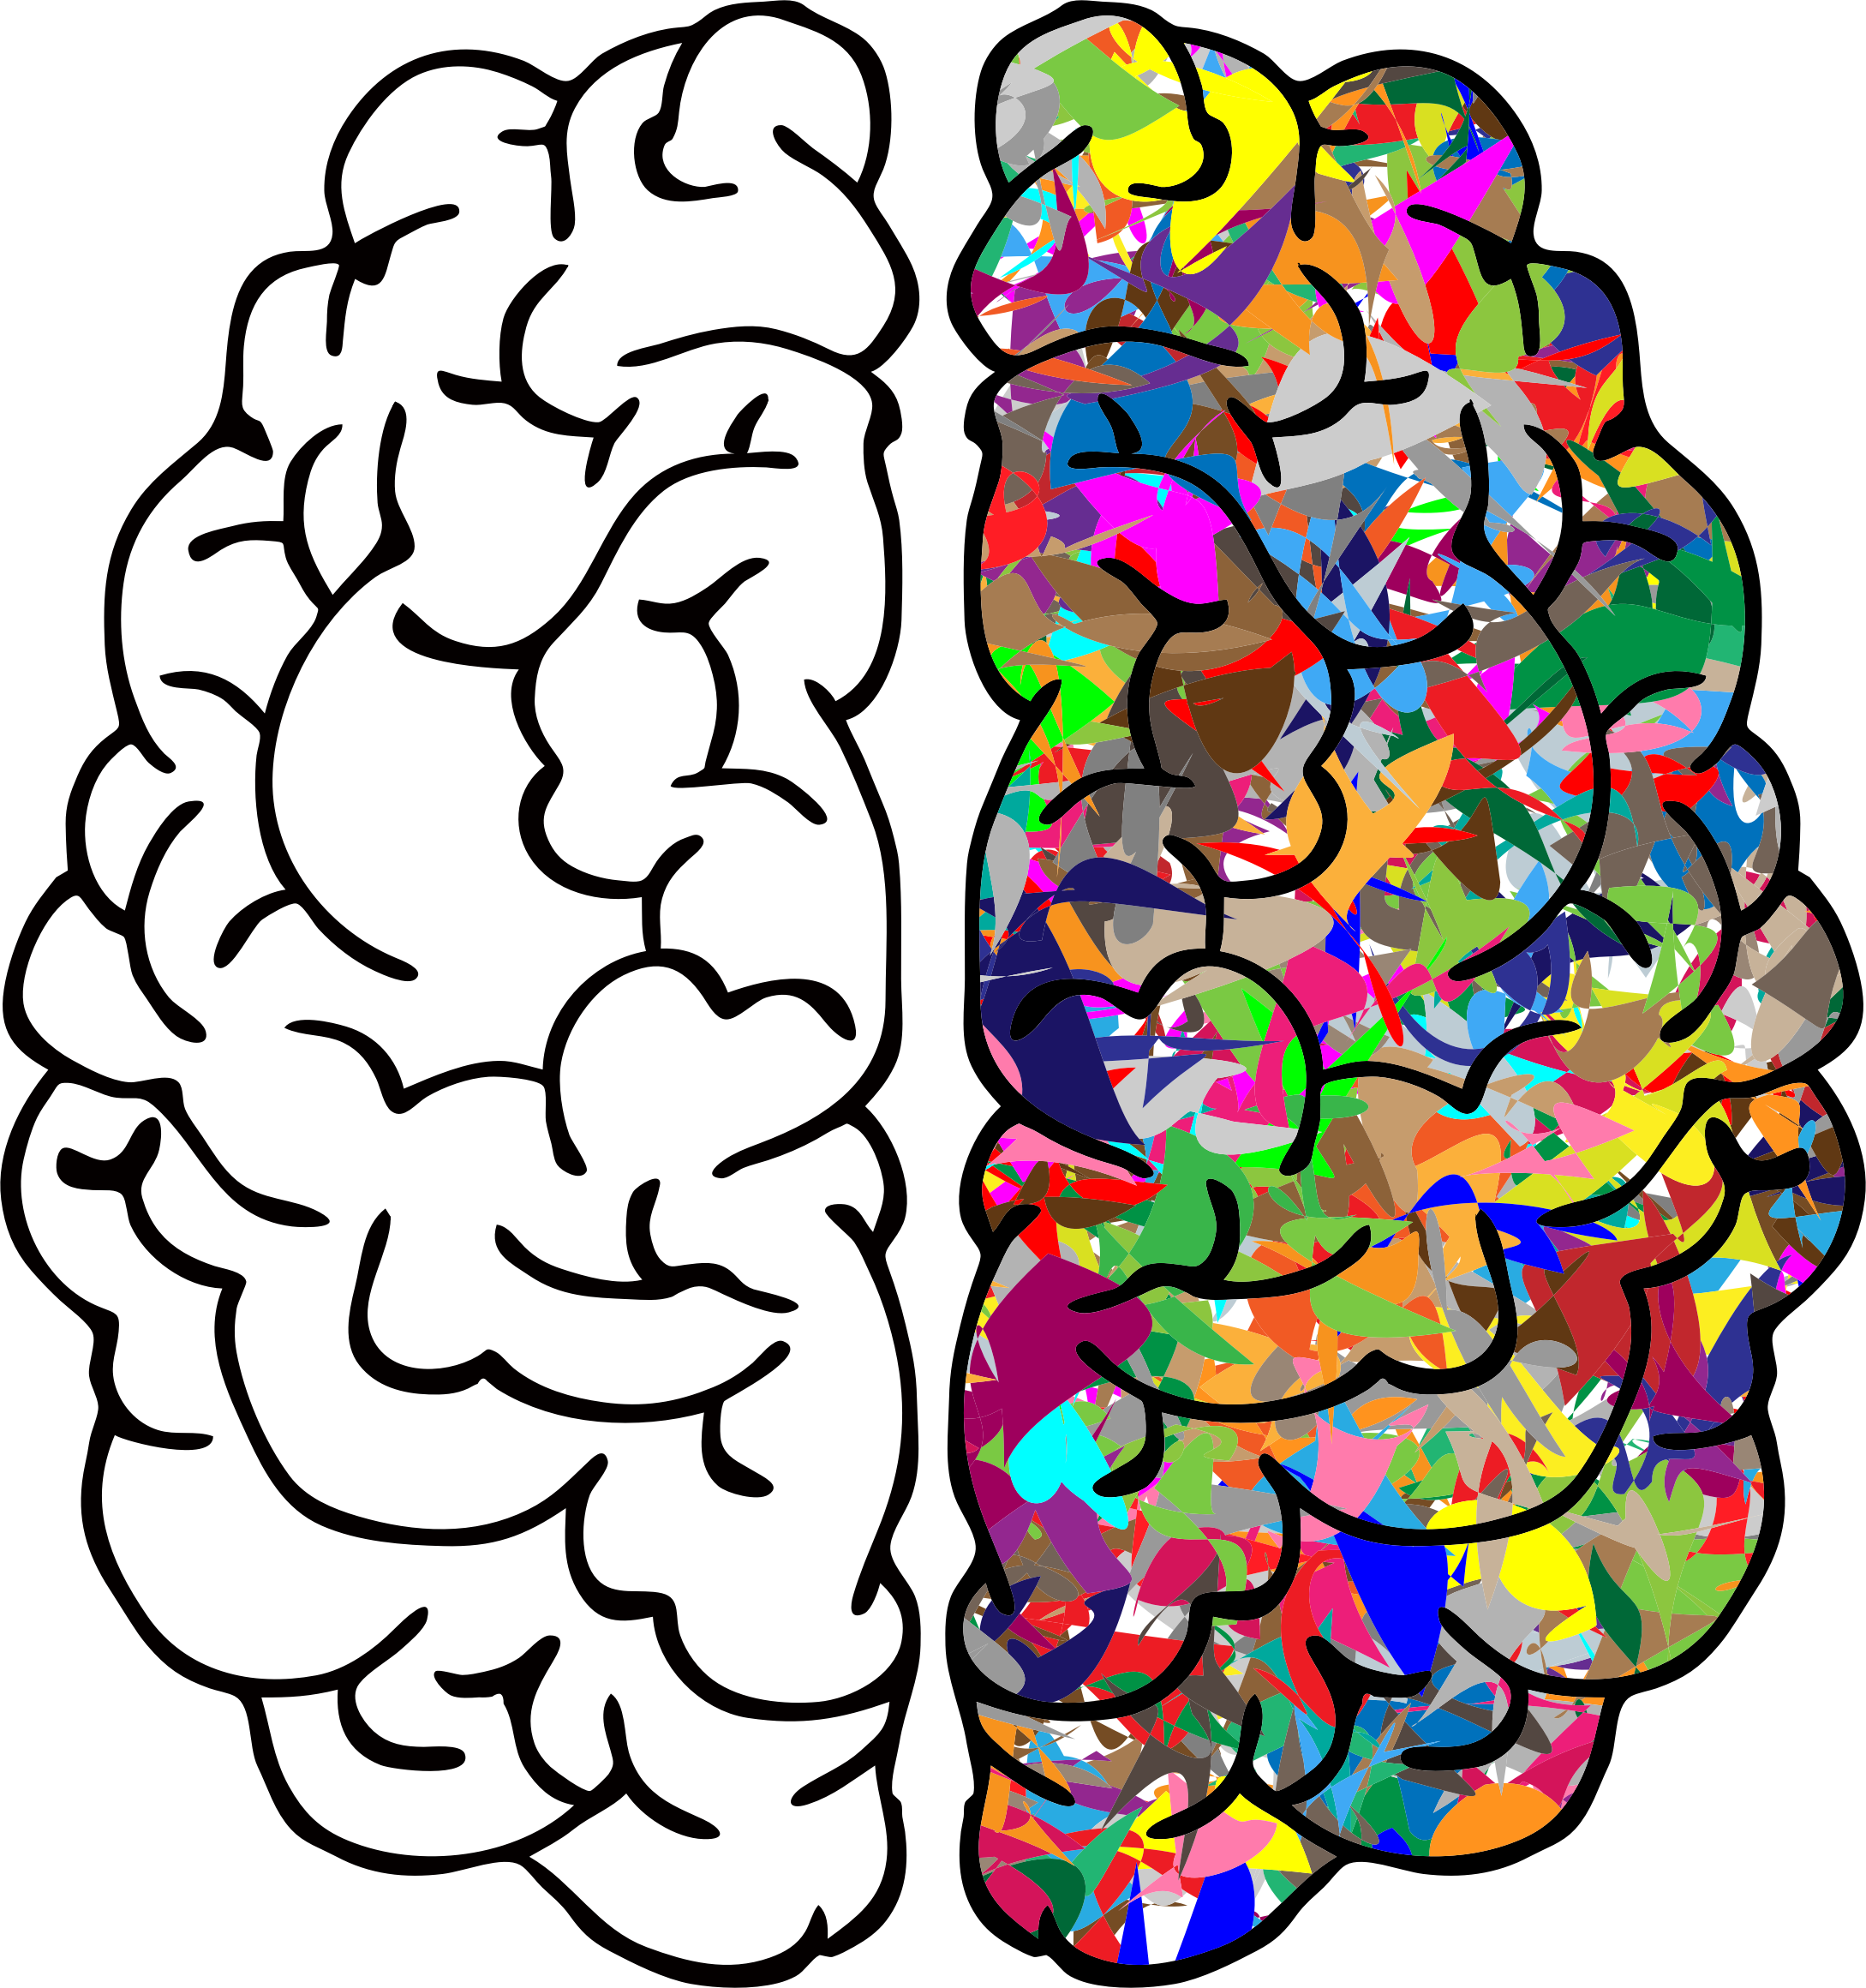 Brain png. Abstract line art prismatic